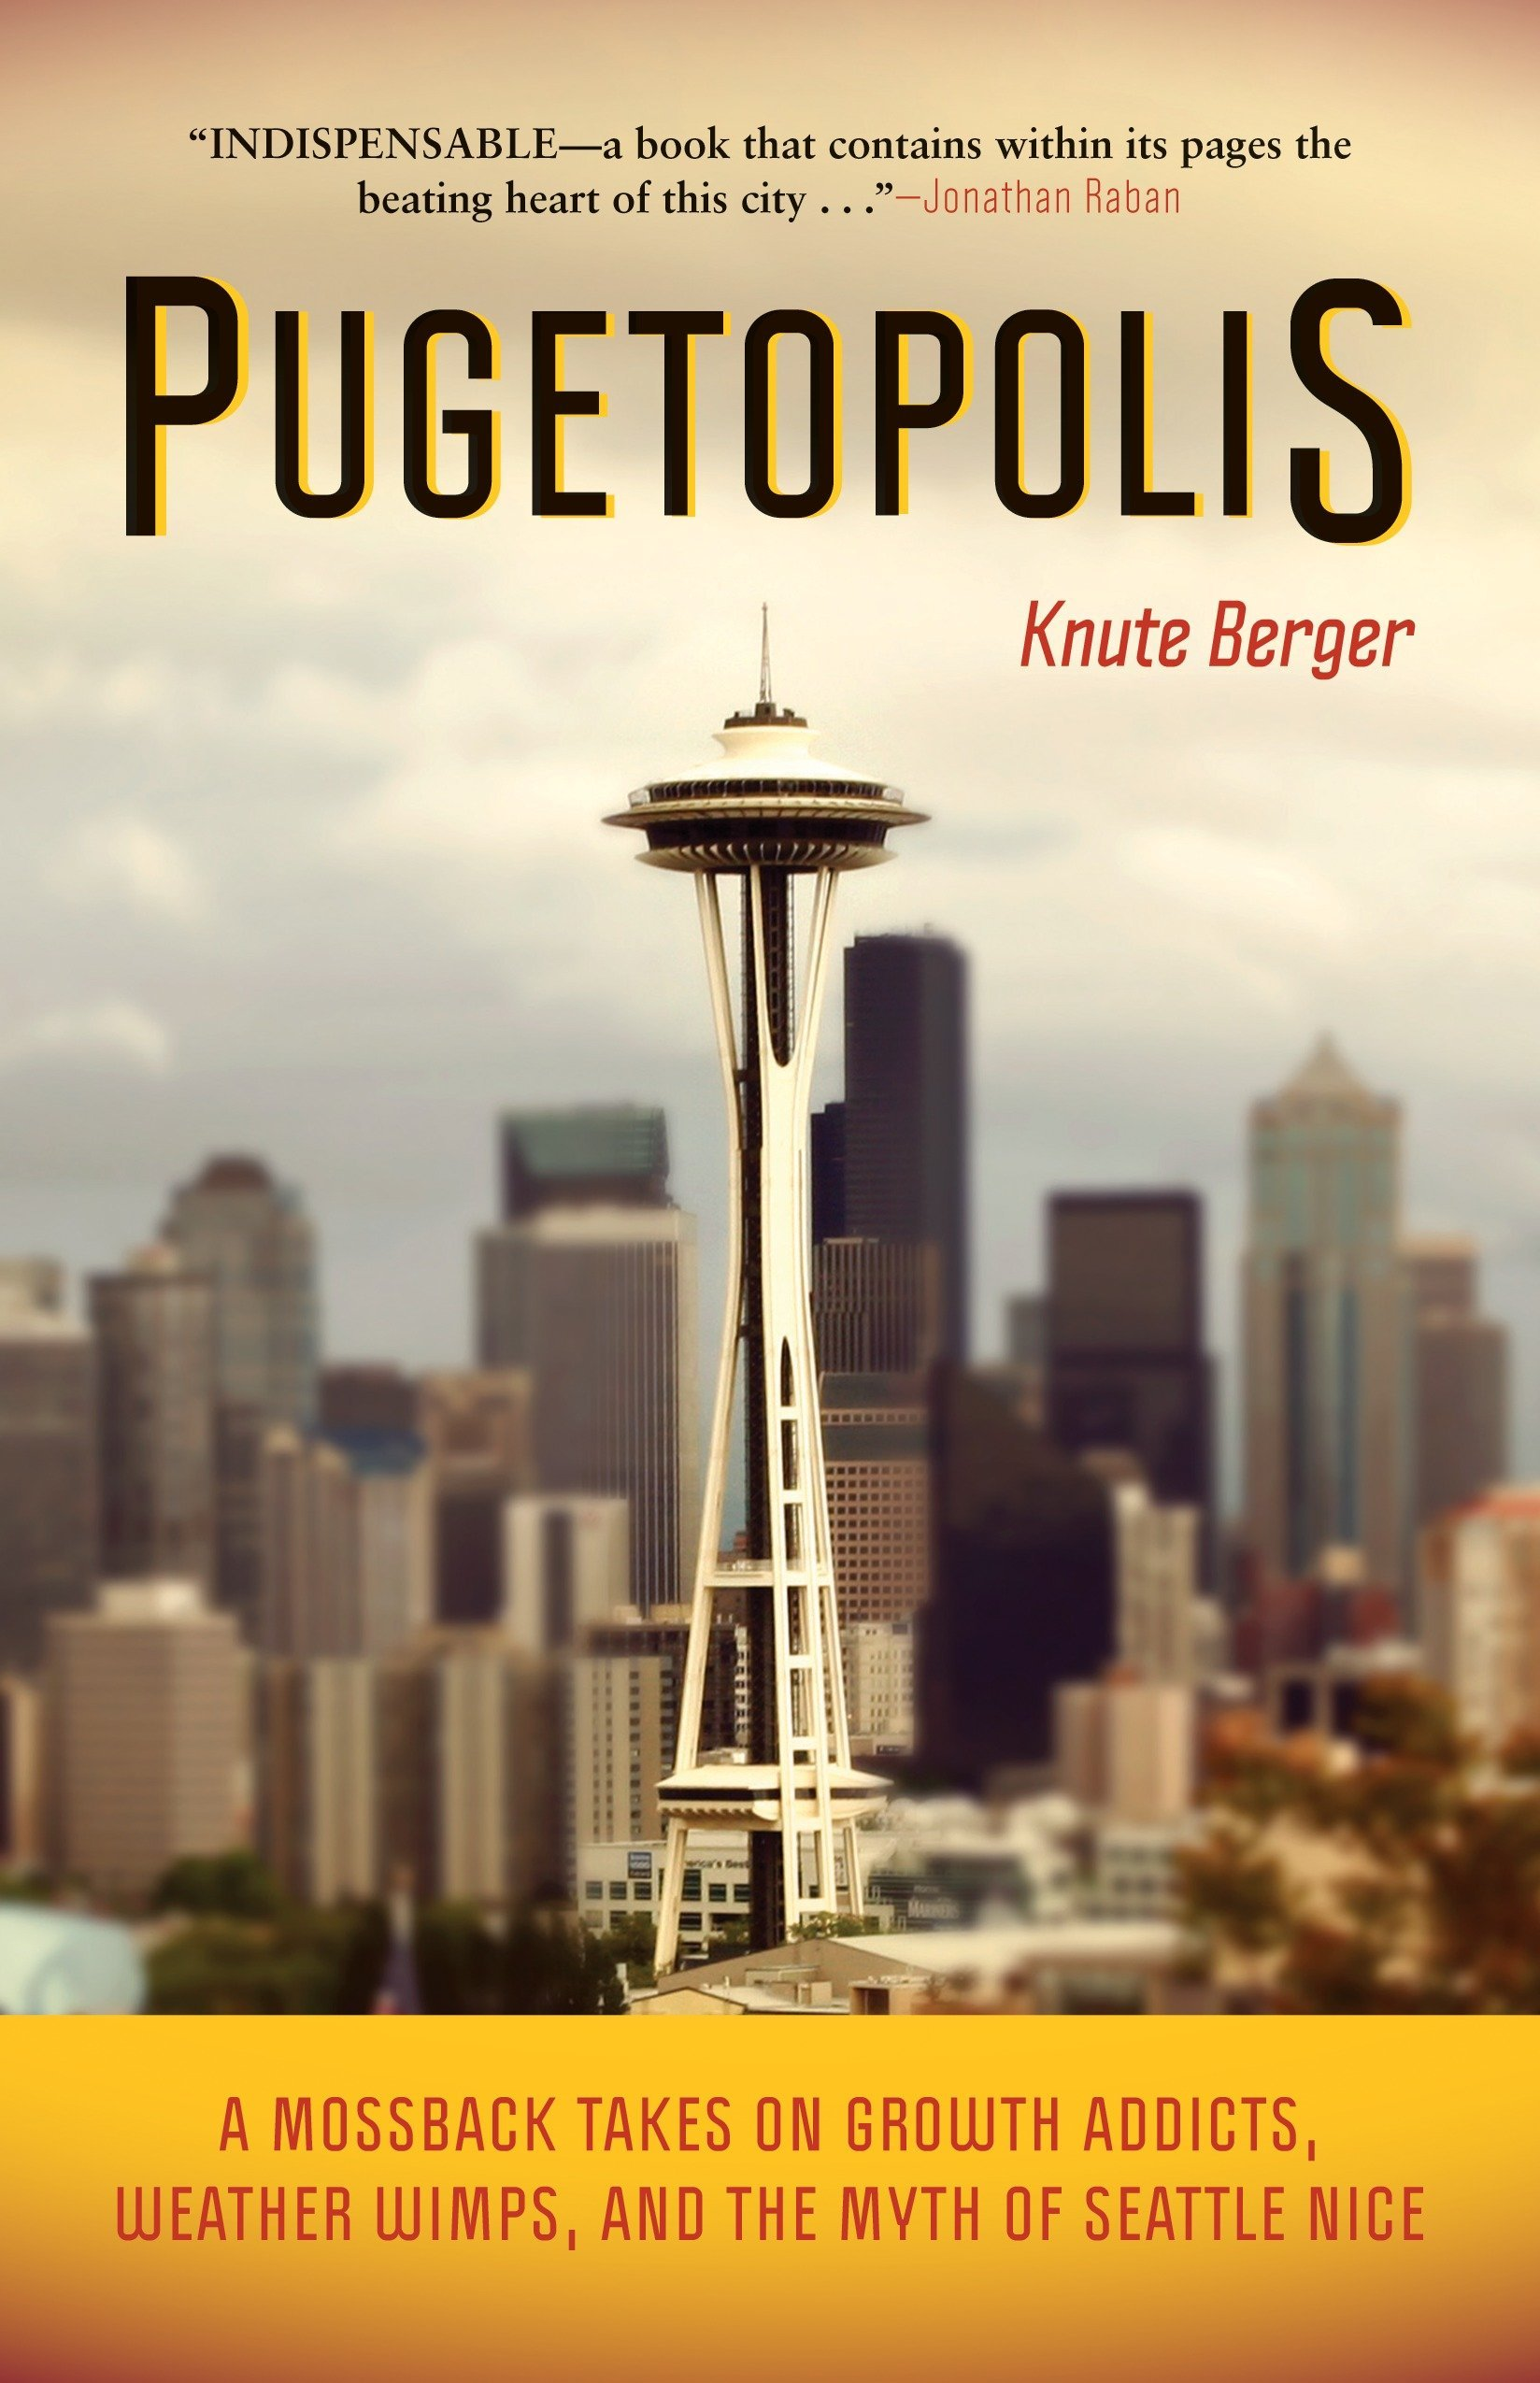 Download Pugetopolis: A Mossback Takes on Growth Addicts, Weather Wimps, and the Myth of Seattle Nice PDF